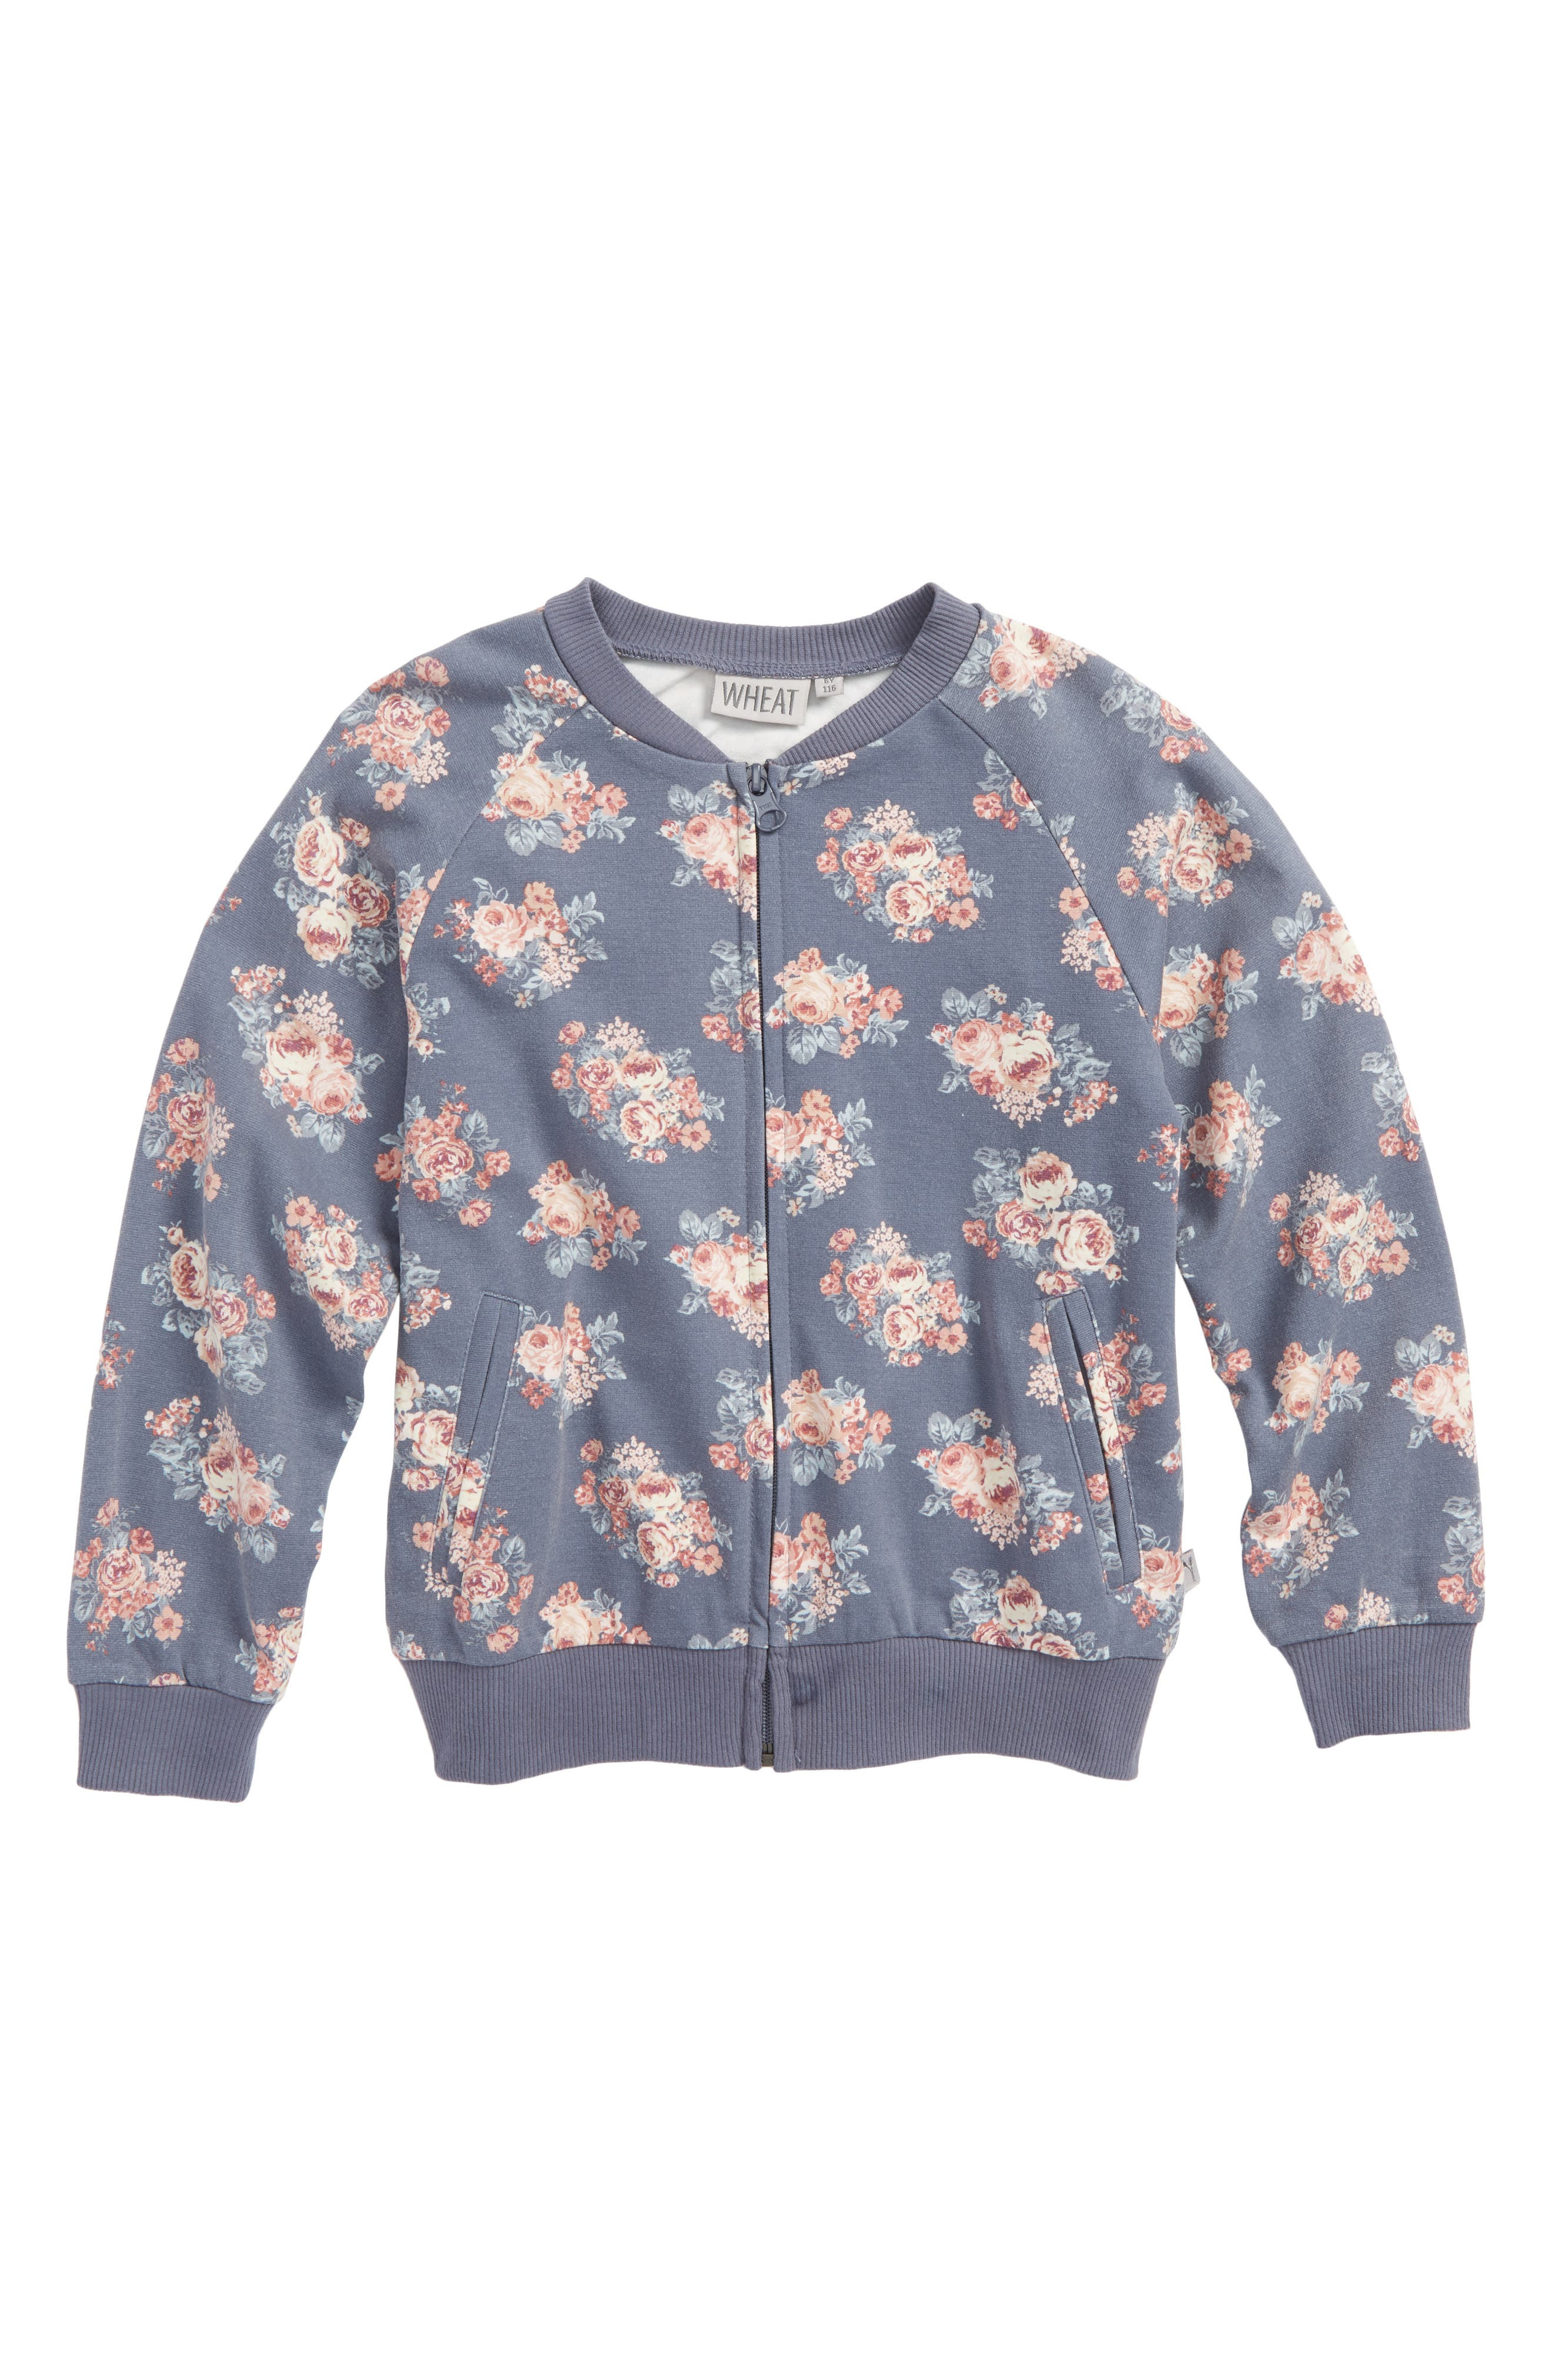 Wheat Liva Floral Sweatshirt (Toddler Girls, Little Girls & Big Girls)